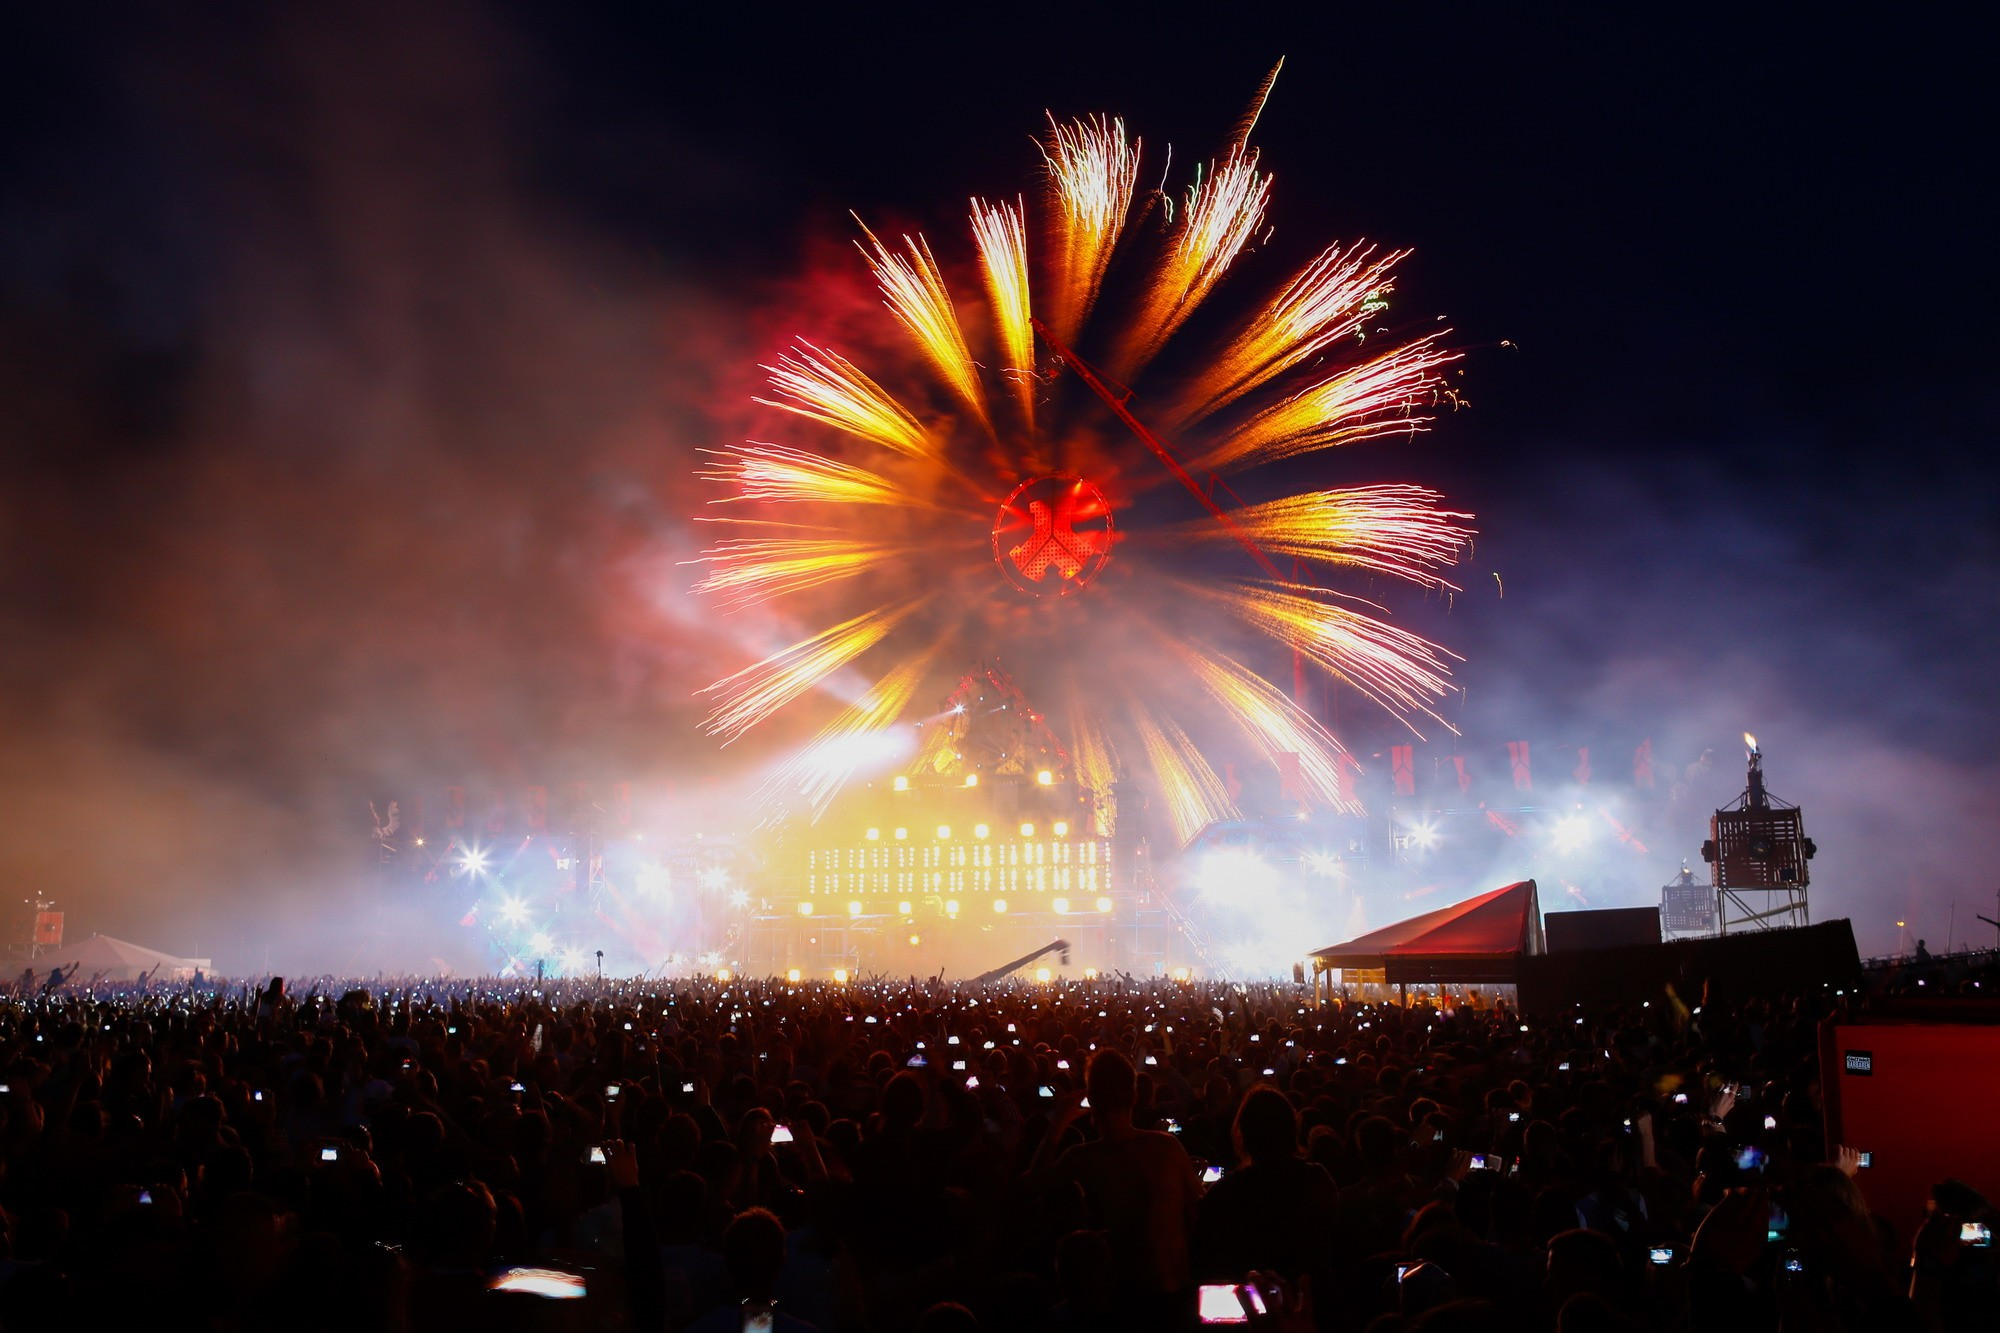 Concert background download free cool full hd - Concert crowd wallpaper ...